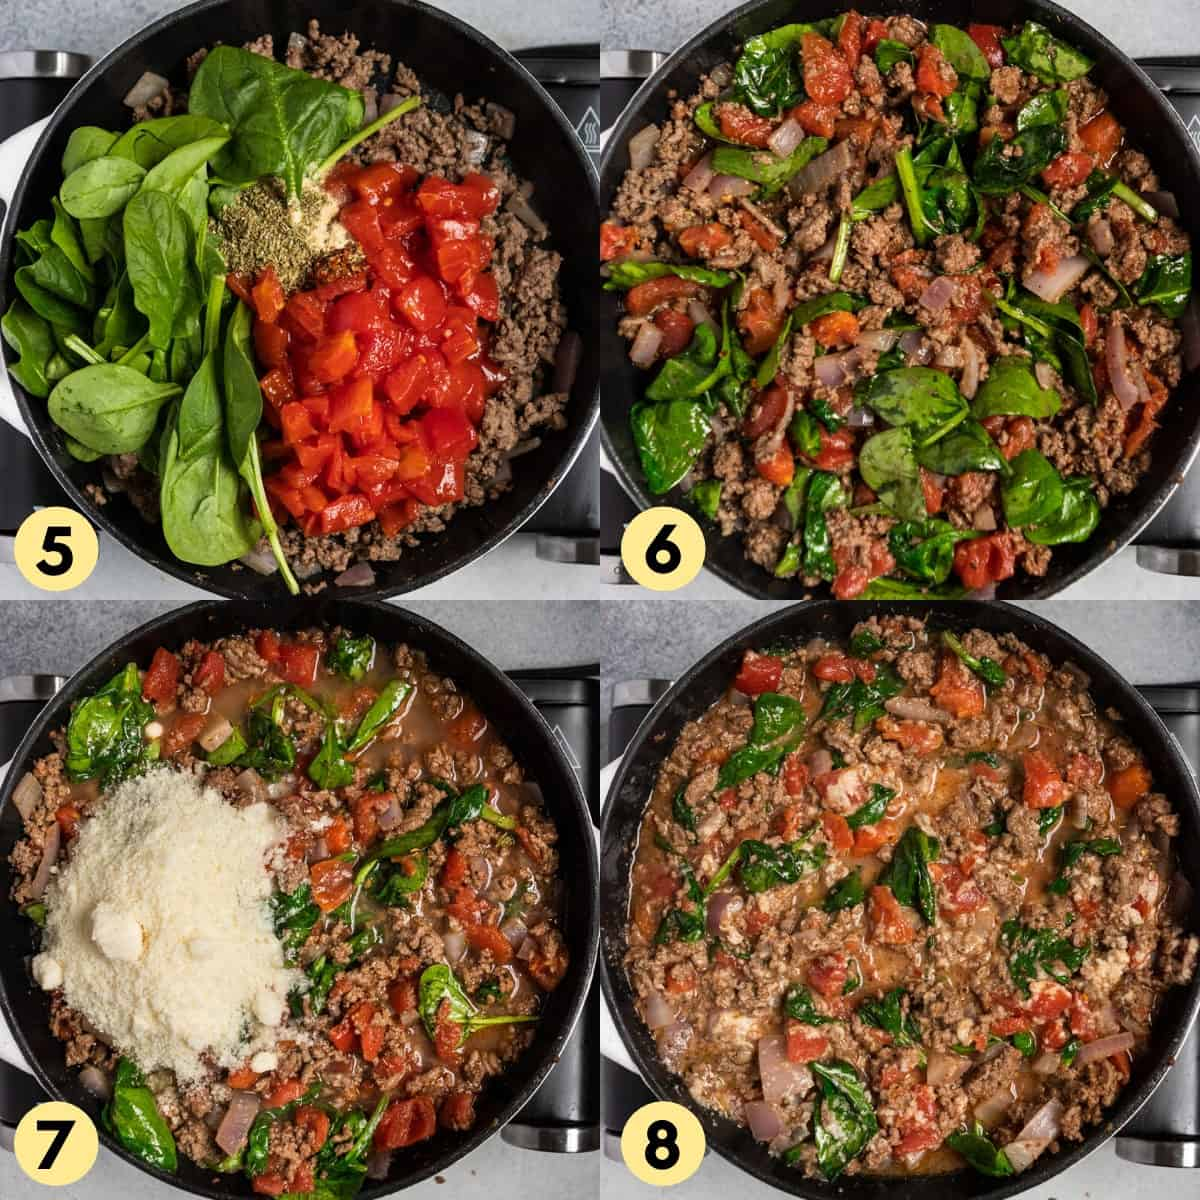 Process photos showing addition of spinach, tomatoes, parmesan to beef skillet.